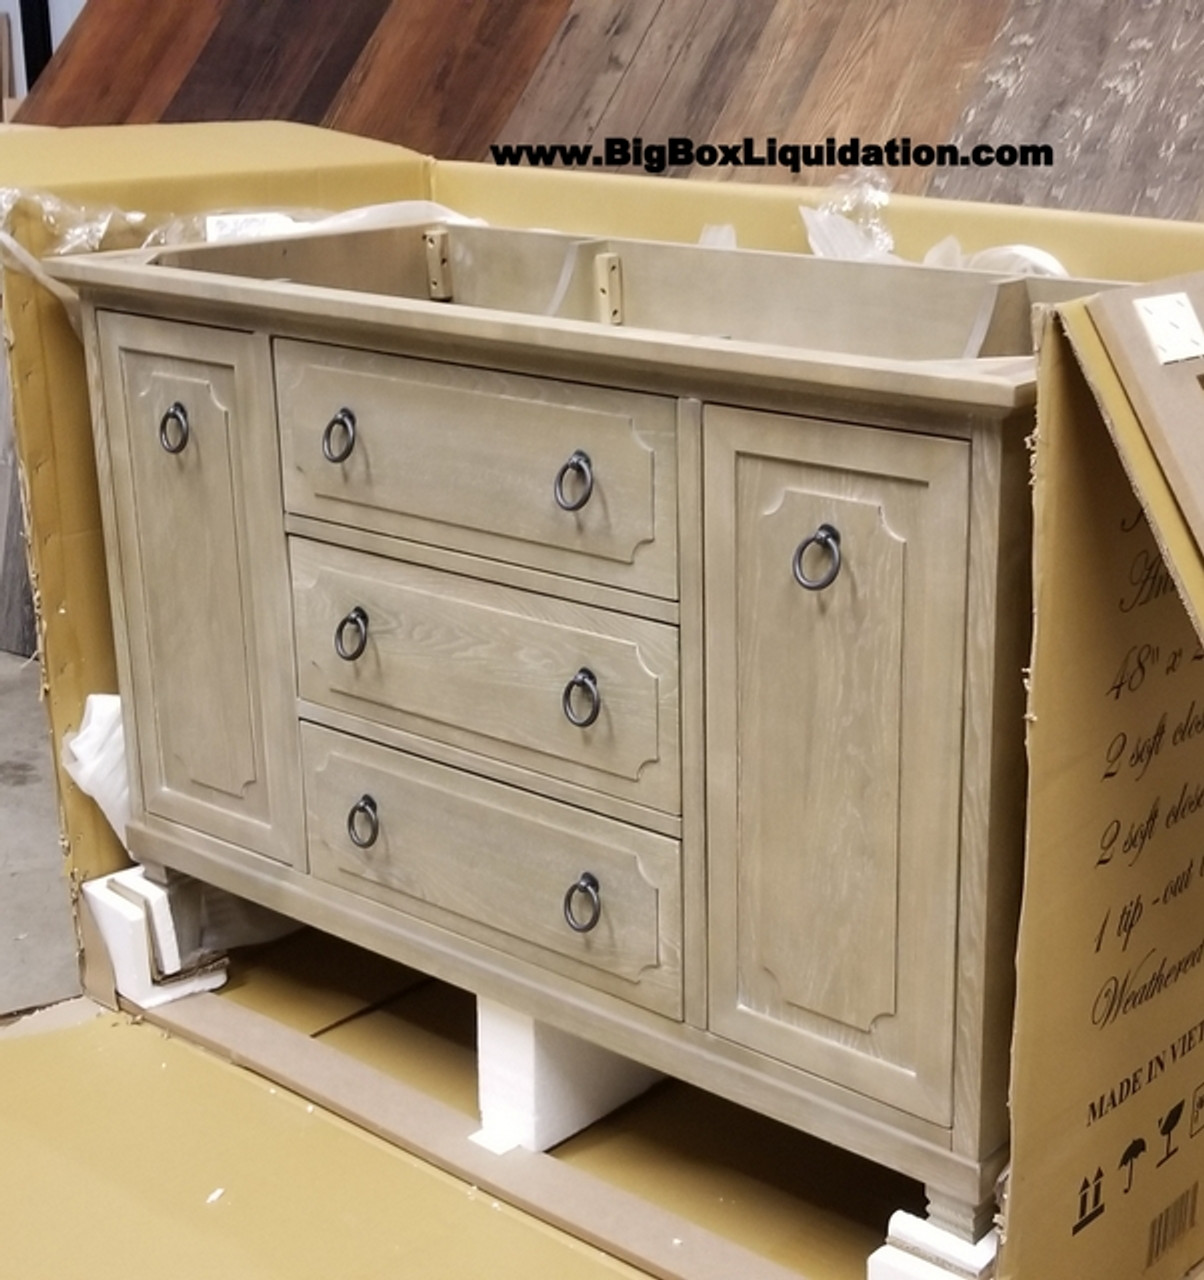 Solid Wood Ann Stained Weathered Gray 48 In X 22 In All Drawers Slow Close Fully Assembled Bath Vanity Cabinet Only Big Box Liquidation Llc